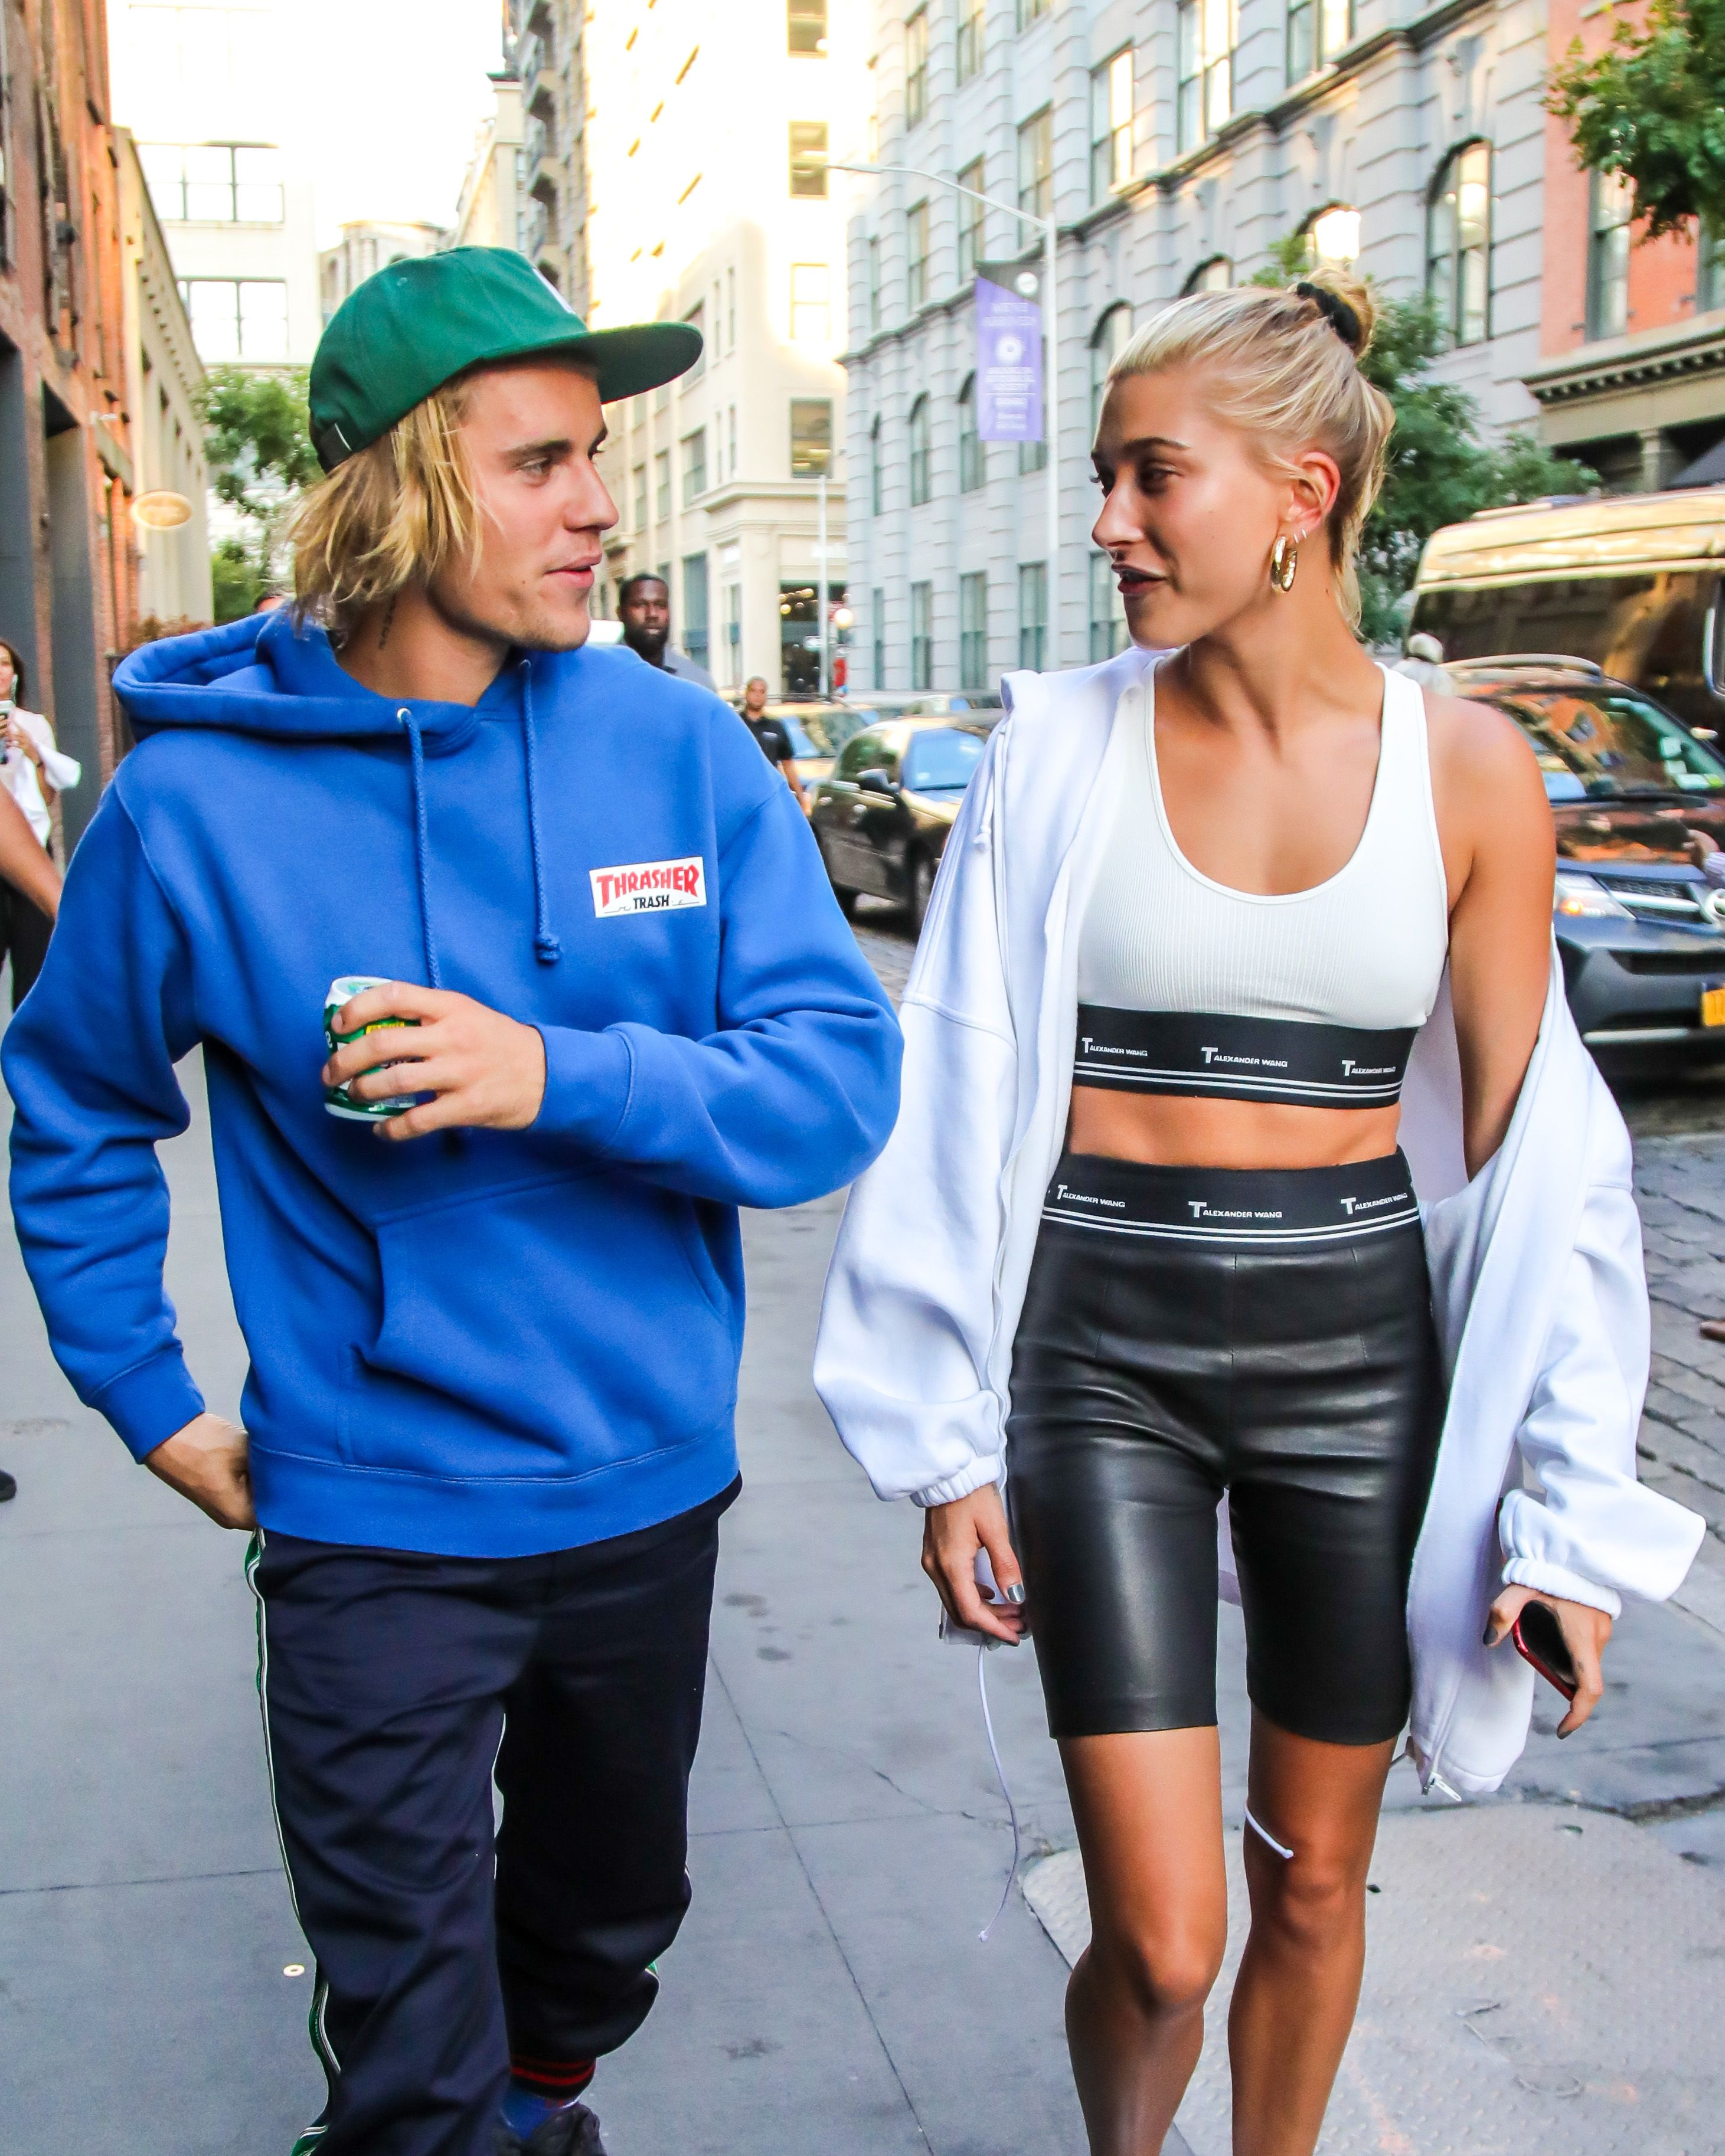 Justin Bieber and Hailey Baldwin's Religious Wedding Date, Location